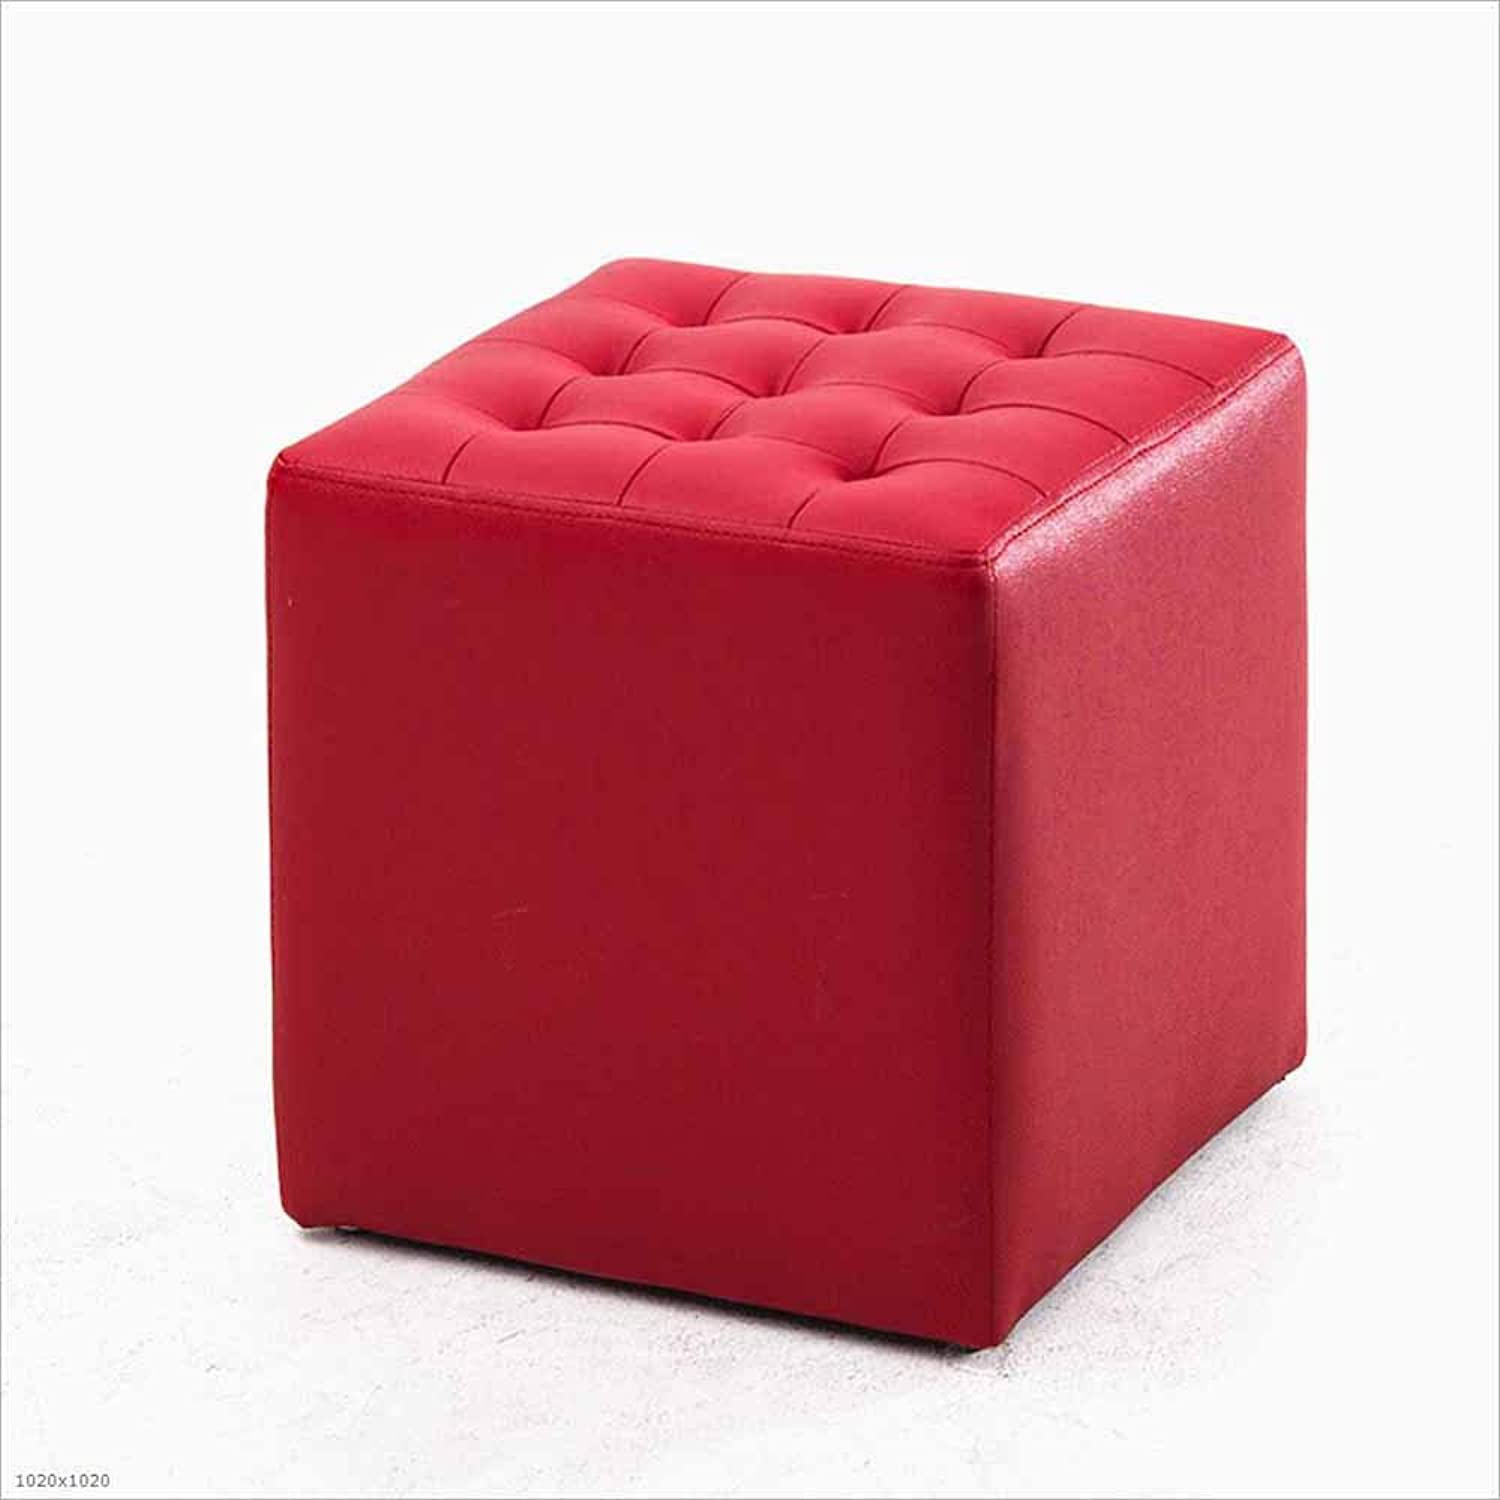 Sofa Stool First Layer Leather Small Round Pier Stool Living Room Stool Change shoes Stool Footstool, 8